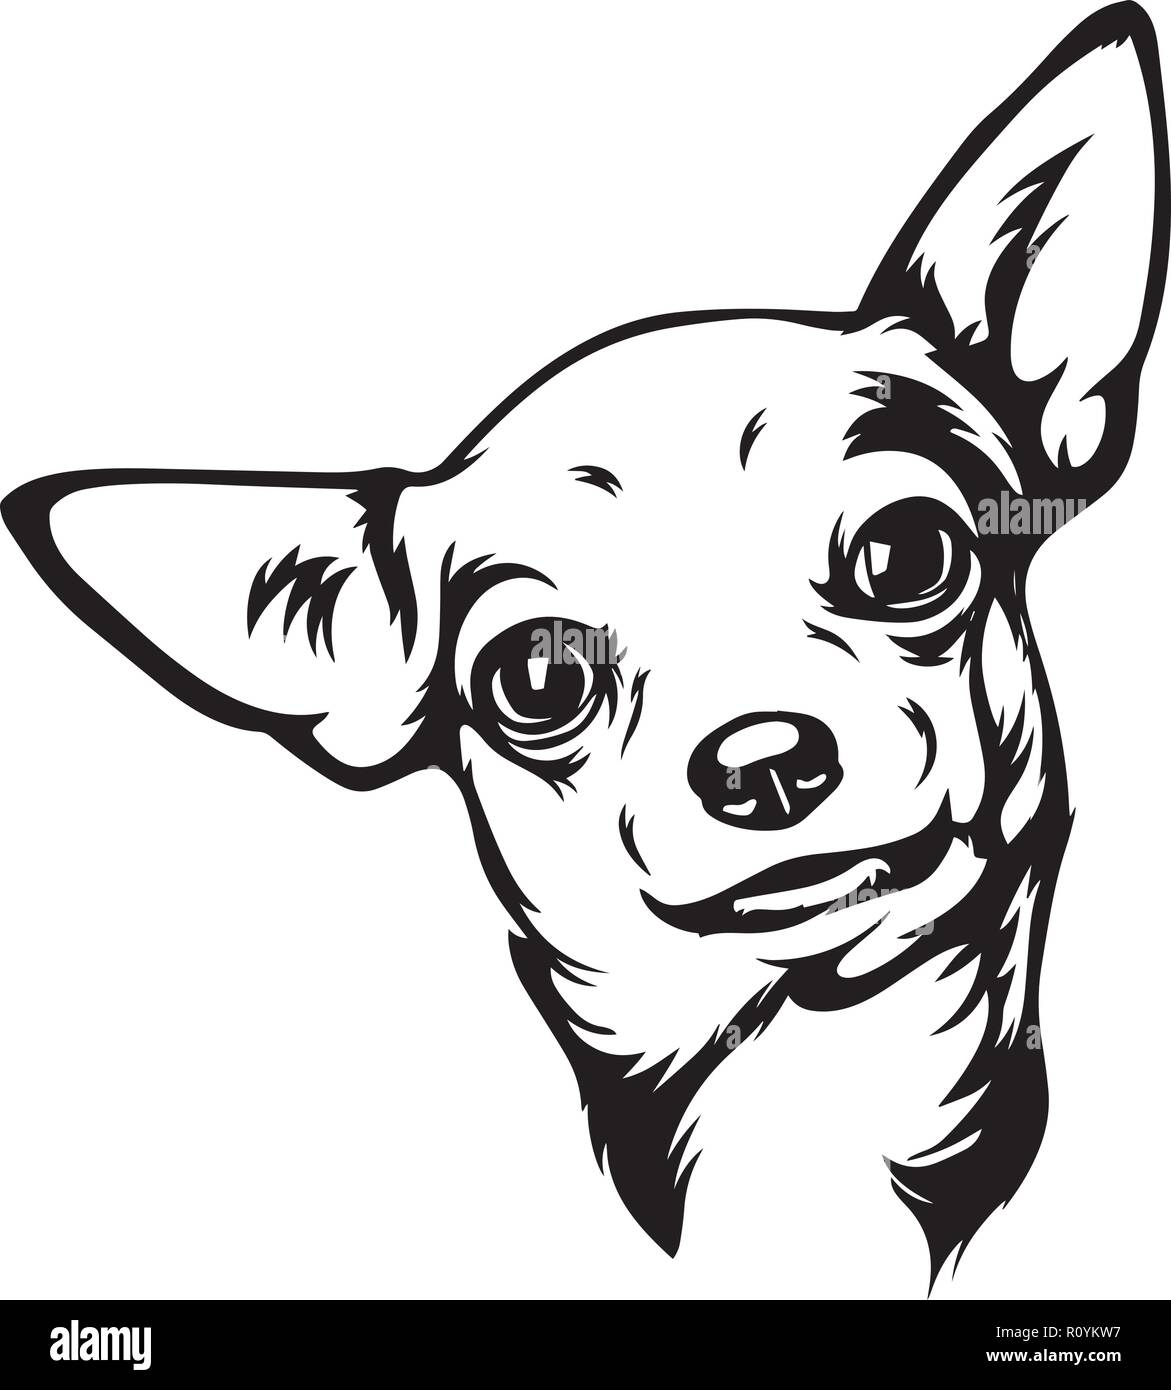 Chihuahua Dog Breed Head Isolated Pedigree Pet Portrait Smiling Happy Puppy Face Animal Cartoon Illustration Portrait Art Artwork Cute Design Stock Vector Image Art Alamy